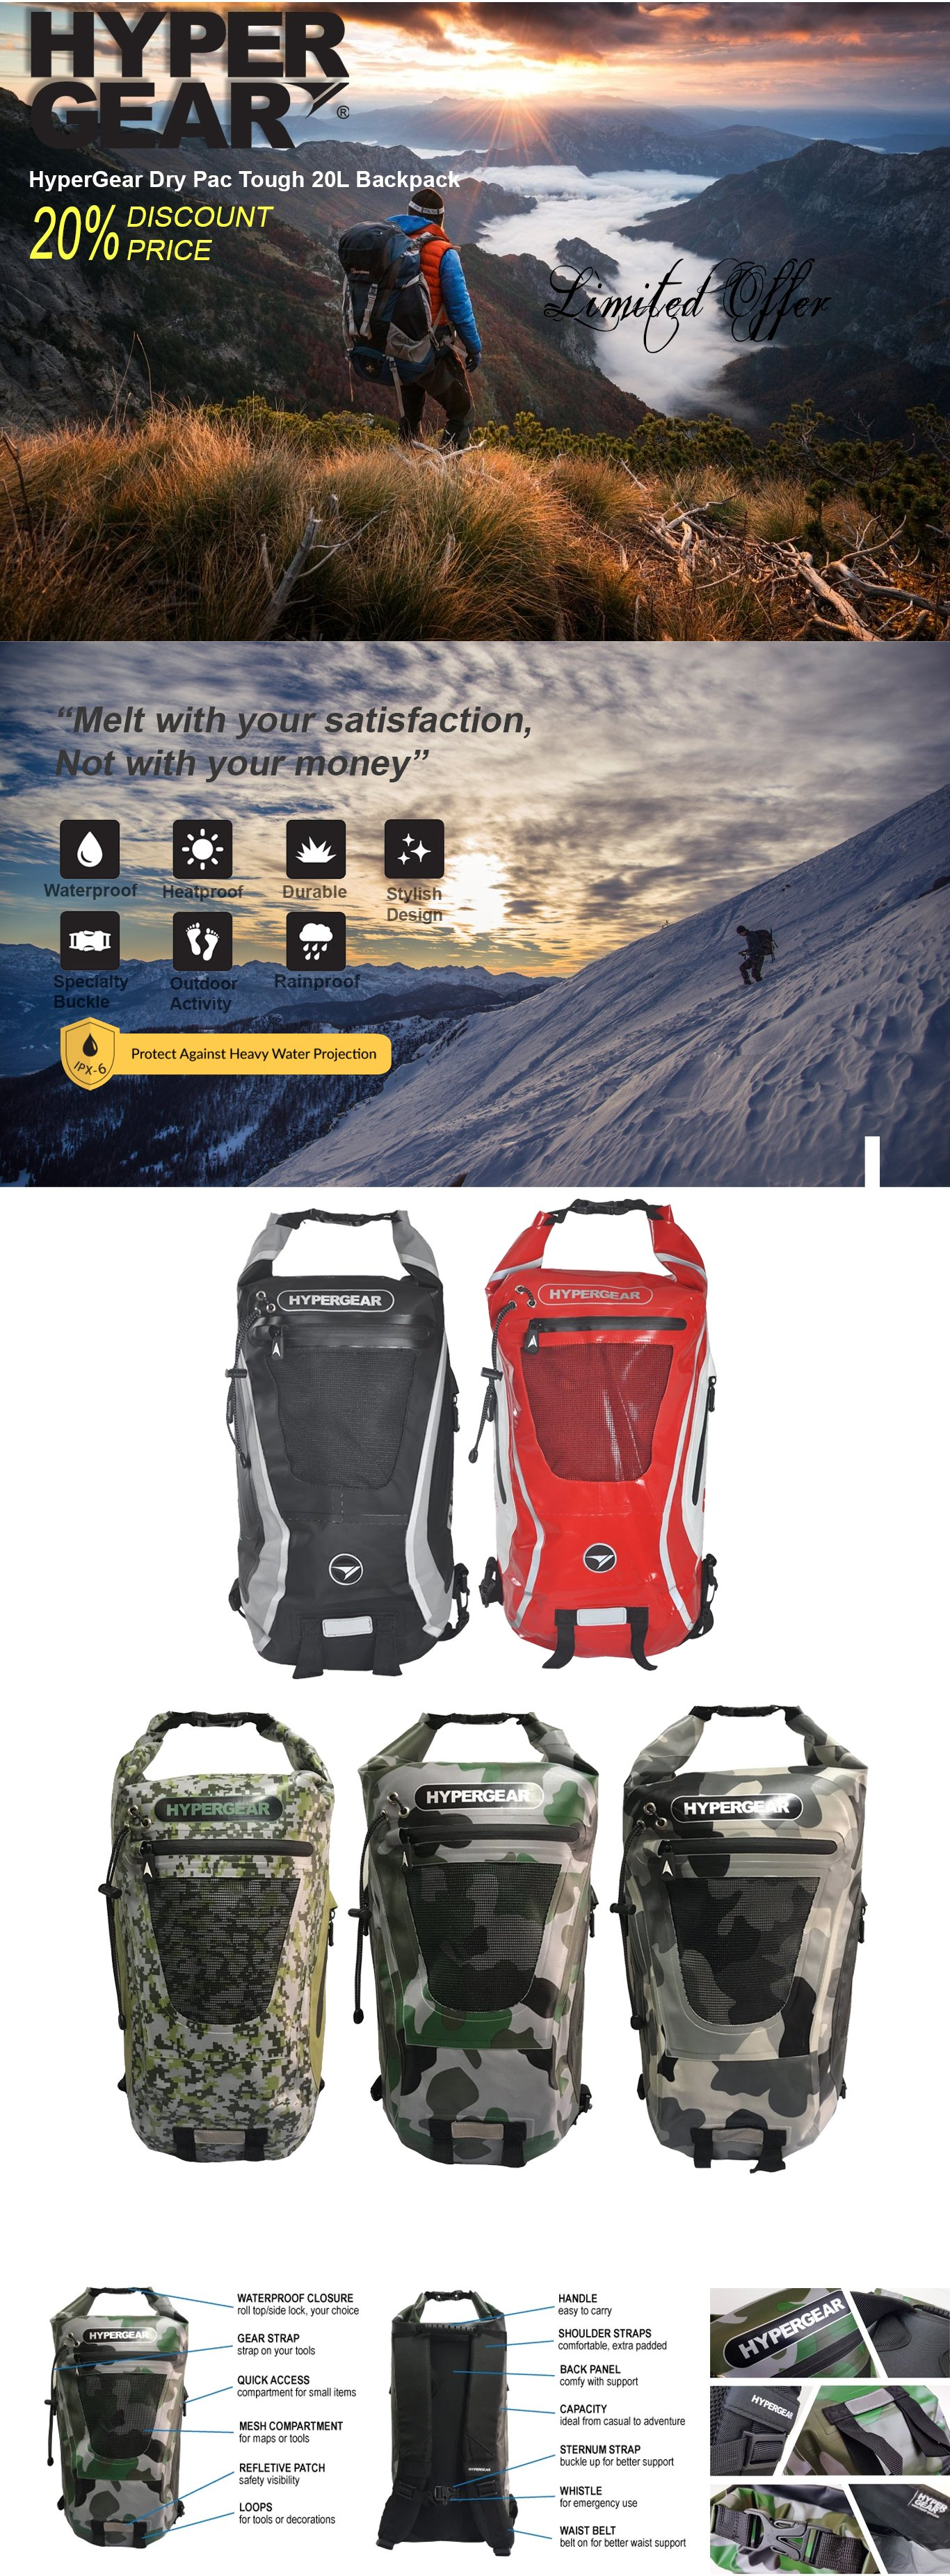 1-des-hypergear-dry-pac-tough-20L-backpack-forexengineer-authorised-retailer